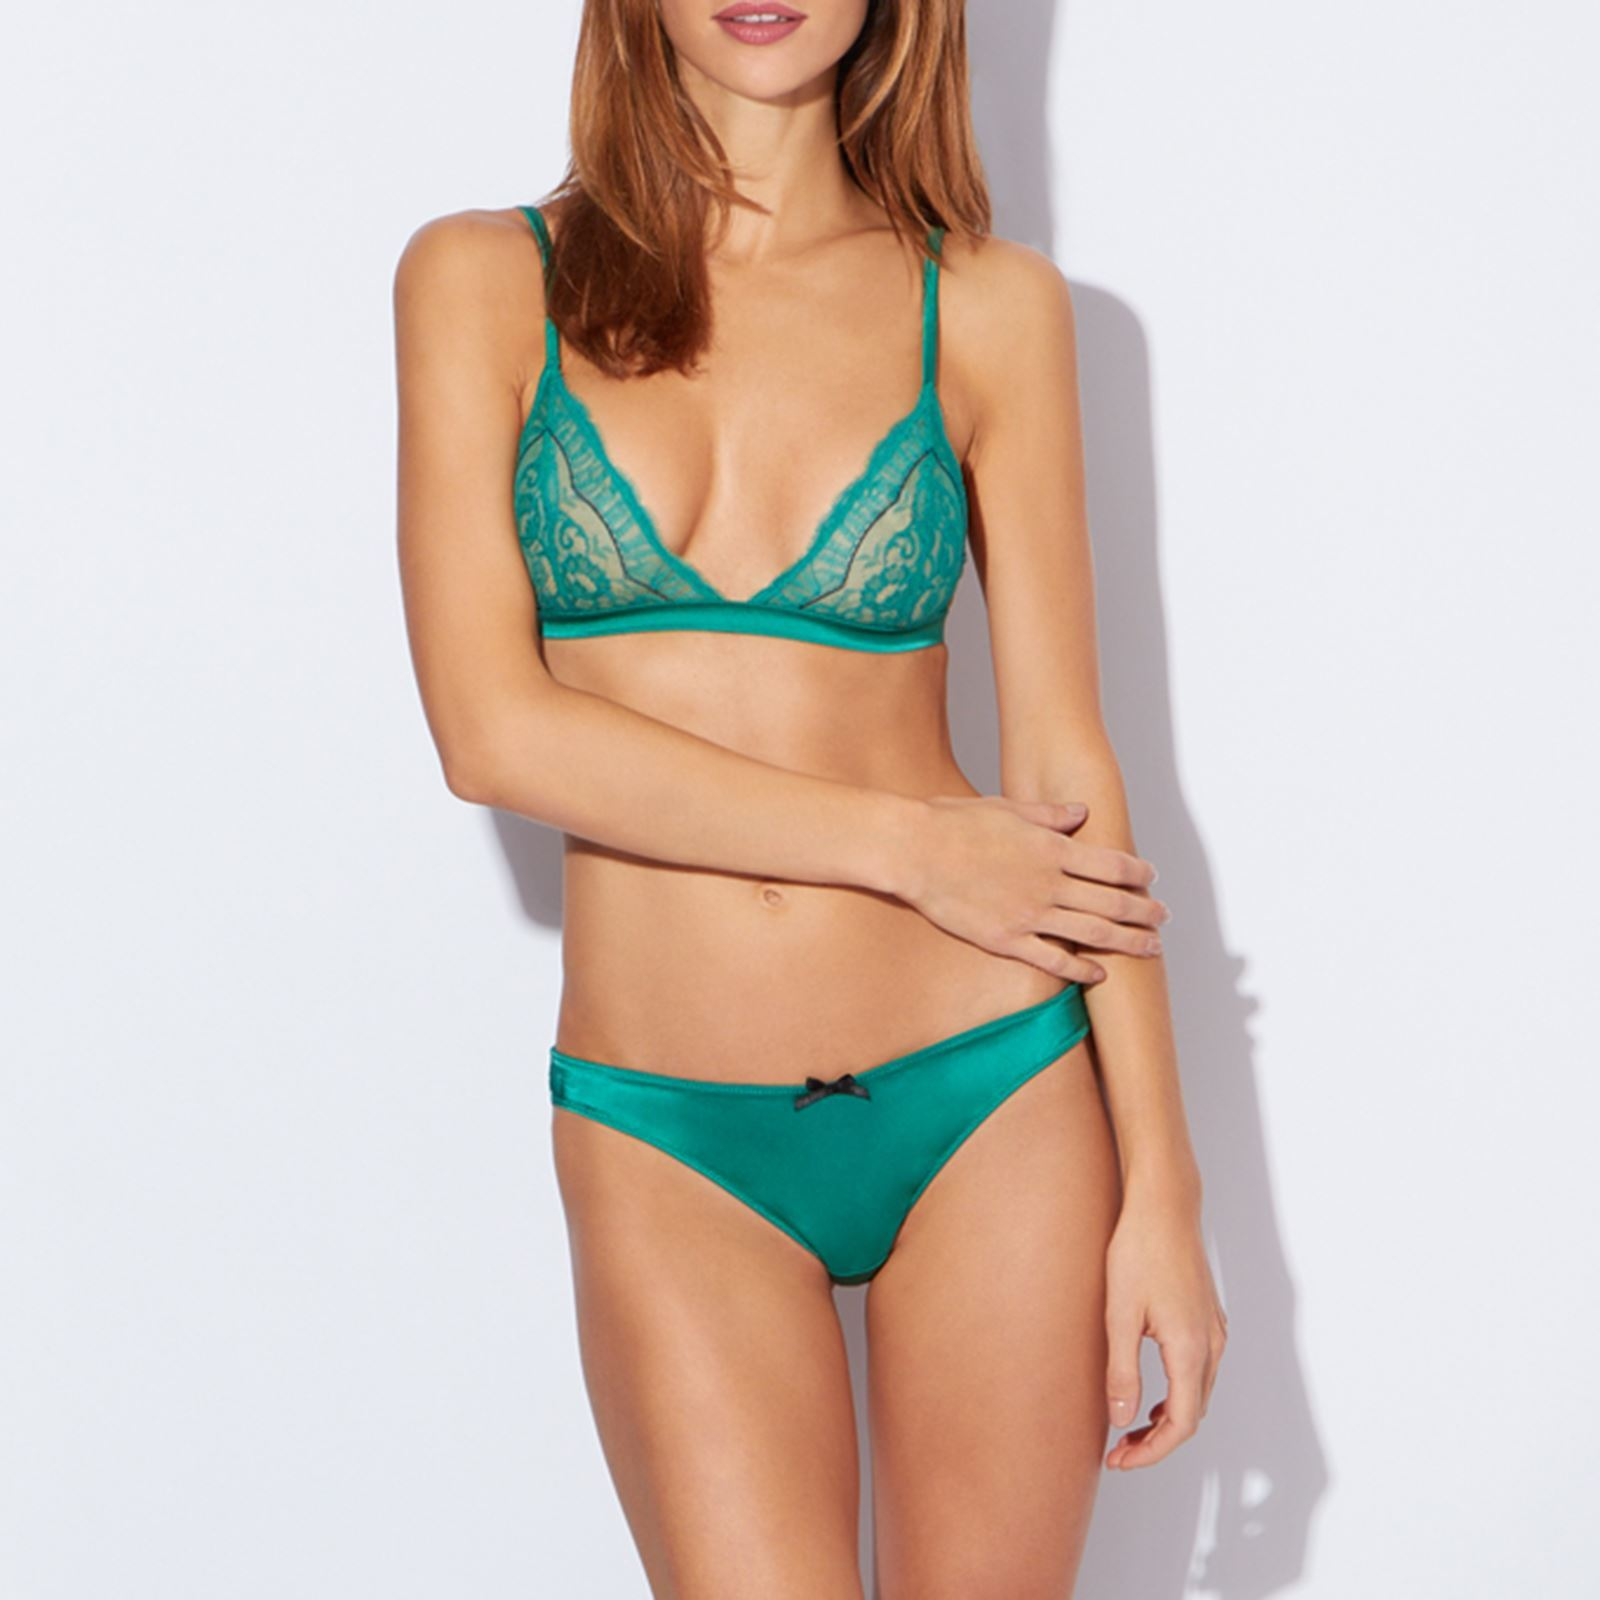 etam lingerie harmonie soutien gorge en soie m lang vert brandalley. Black Bedroom Furniture Sets. Home Design Ideas